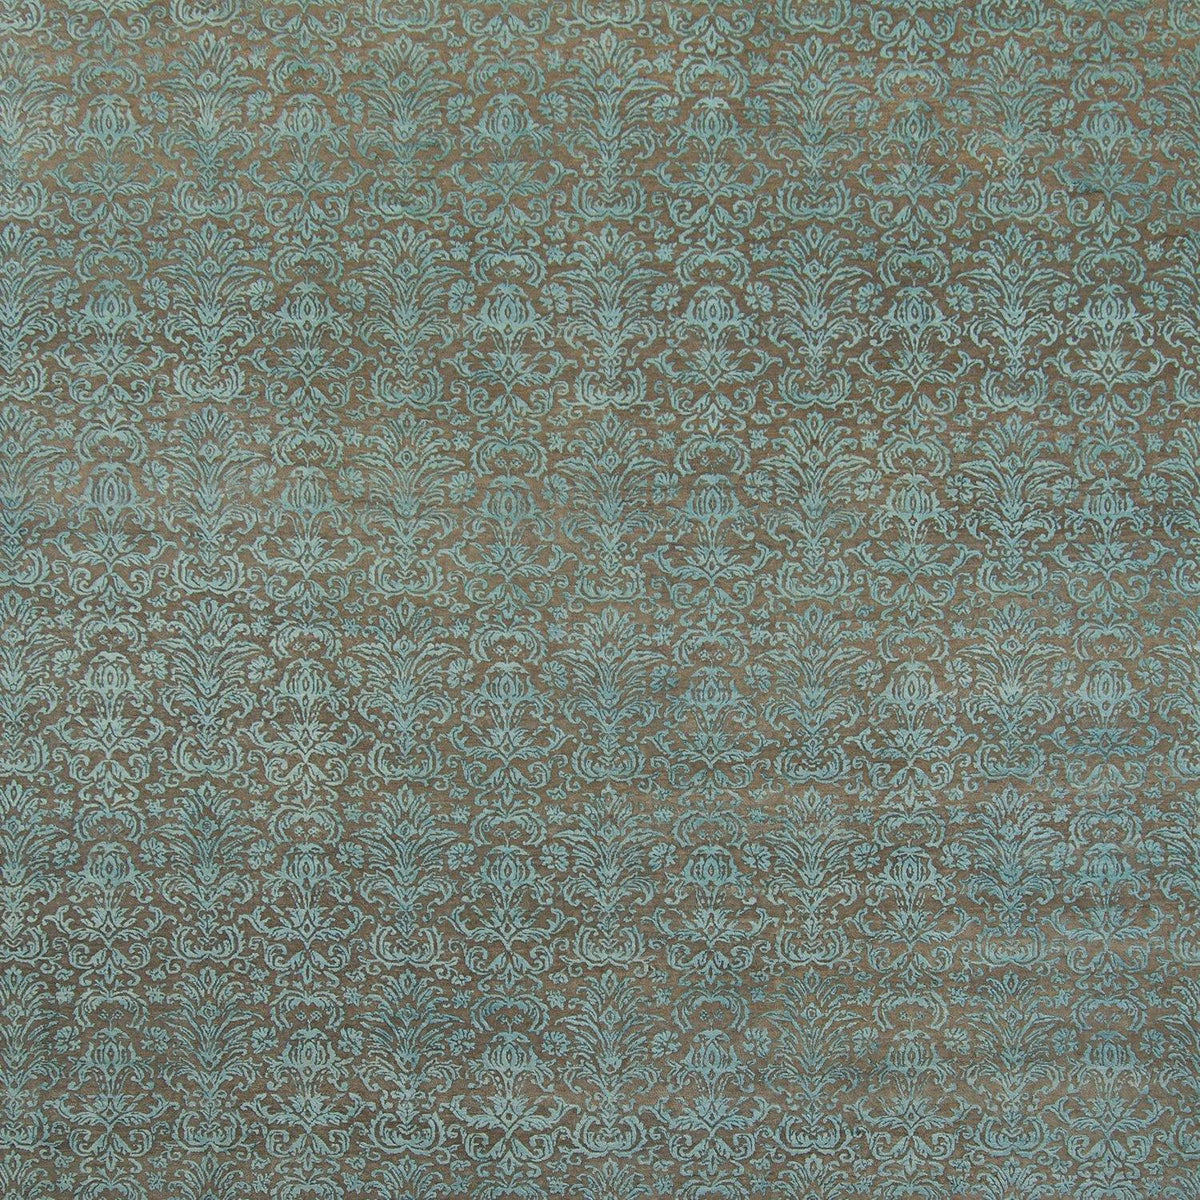 Contemporary Hand-knotted NZ Wool & Silk Damask rug 276cm x 371cm Persian-Rug | House-of-Haghi | NewMarket | Auckland | NZ | Handmade Persian Rugs | Hand Knotted Persian Rugs